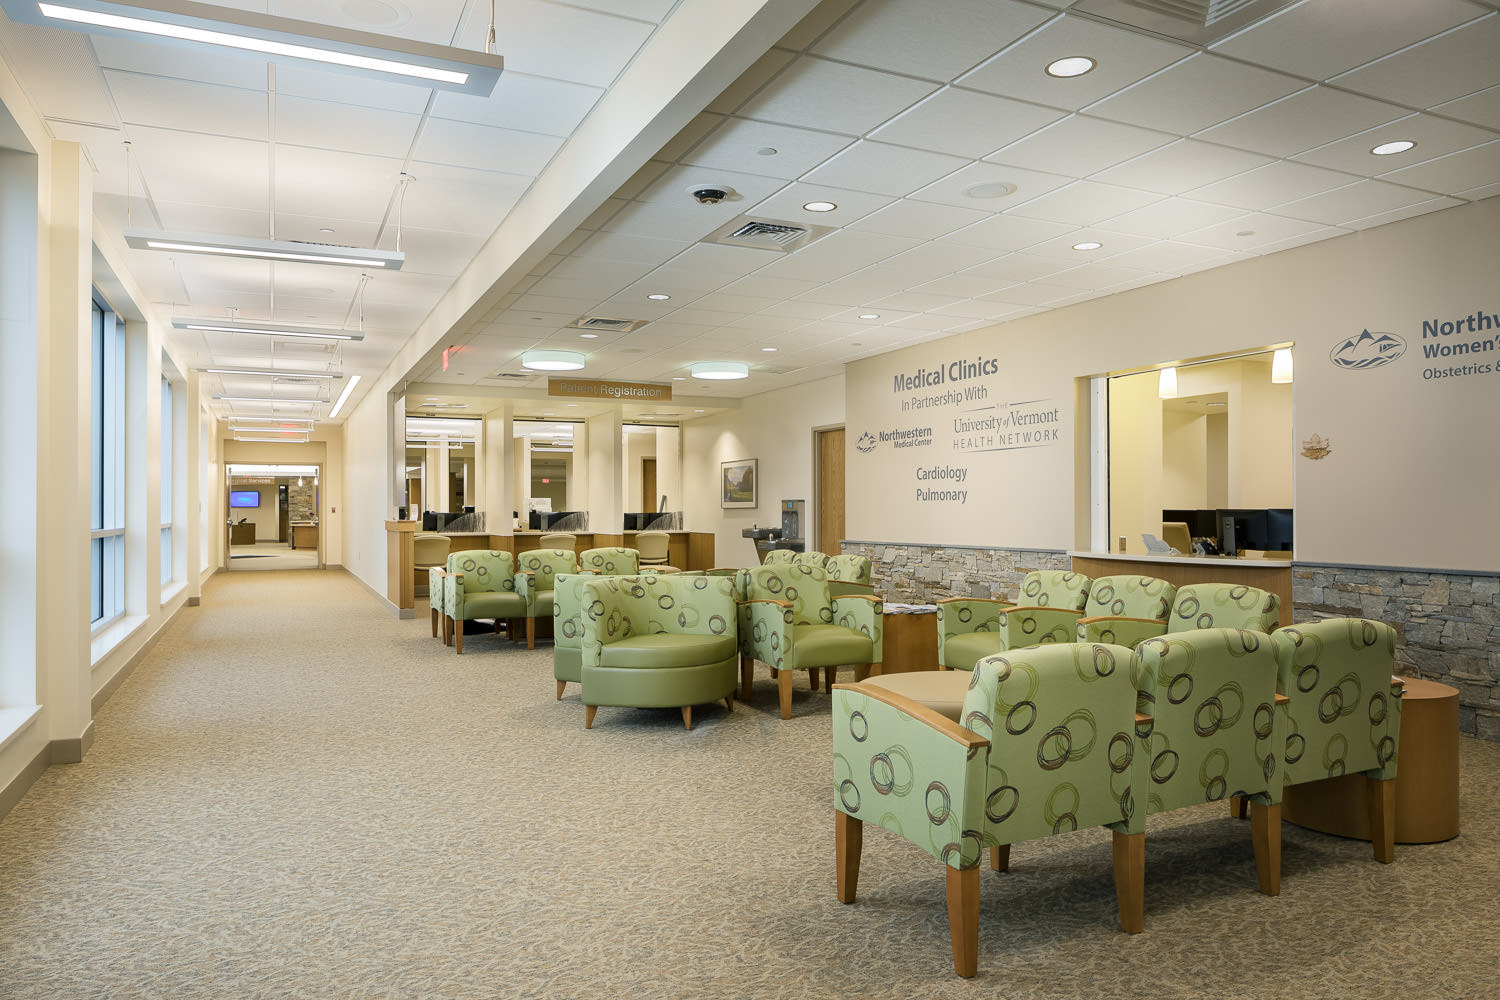 An interior architecture photo of the waiting area in the new Northwestern Medical Center Clinics building in St. Albans Vermont by Studio SB